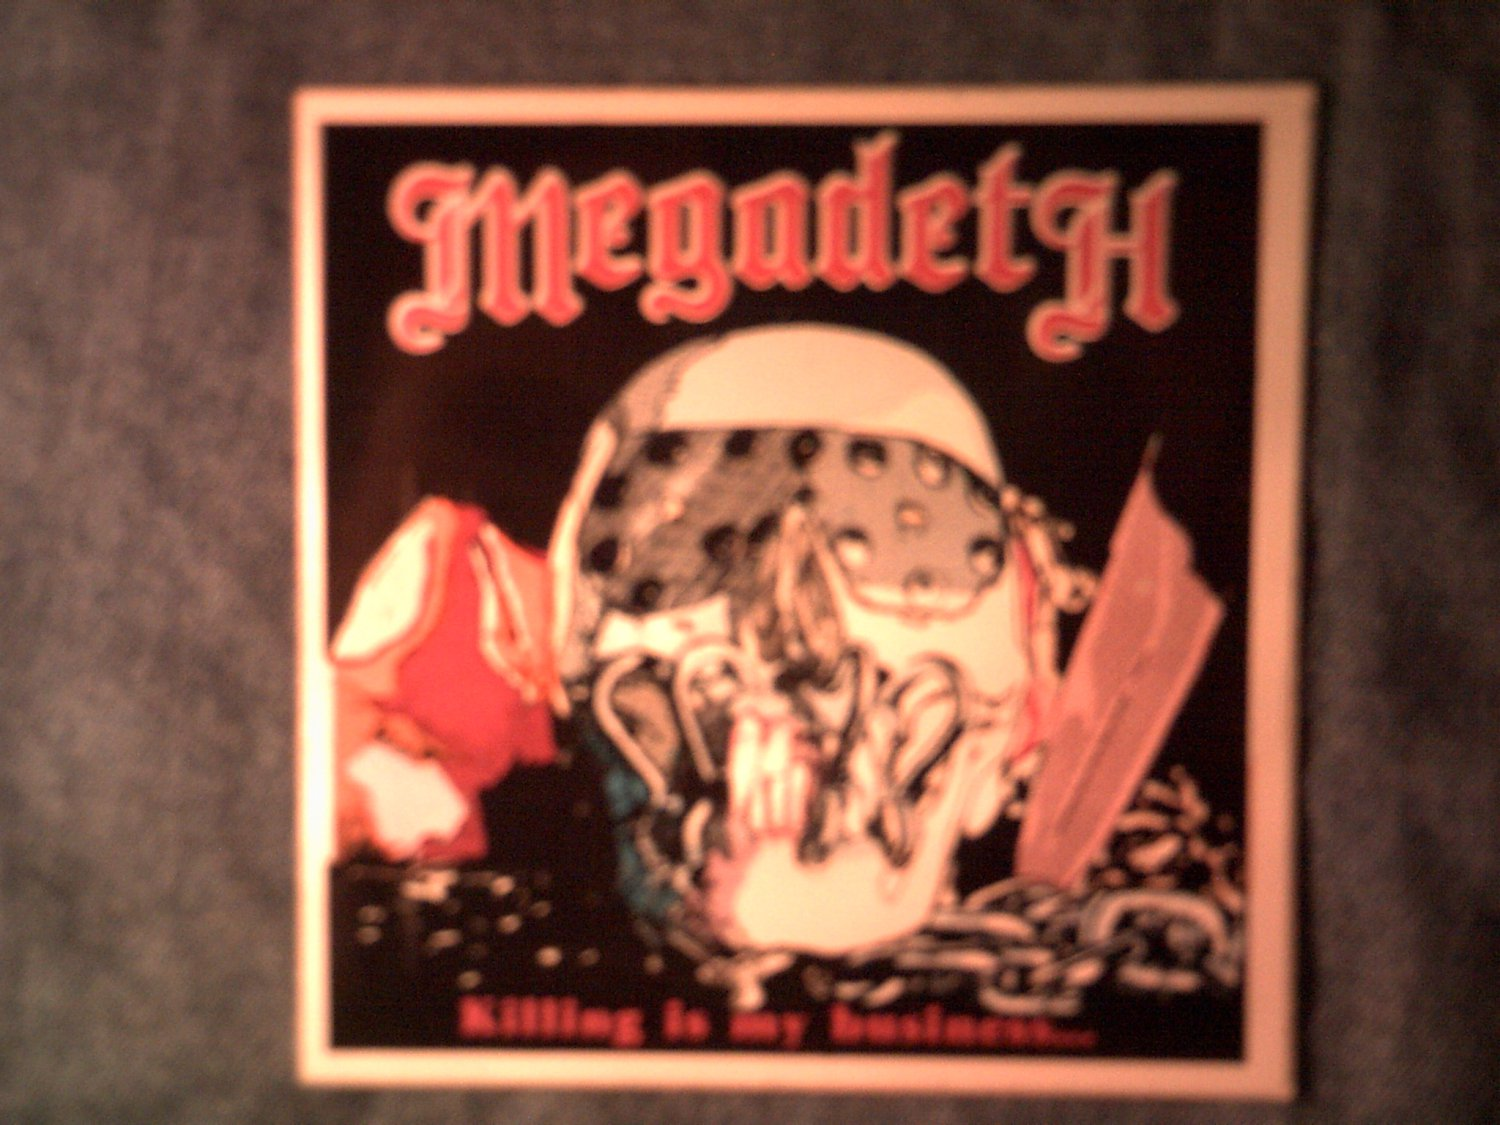 MEGADETH STICKER Kiling Is My Business and Business Is Good VINTAGE